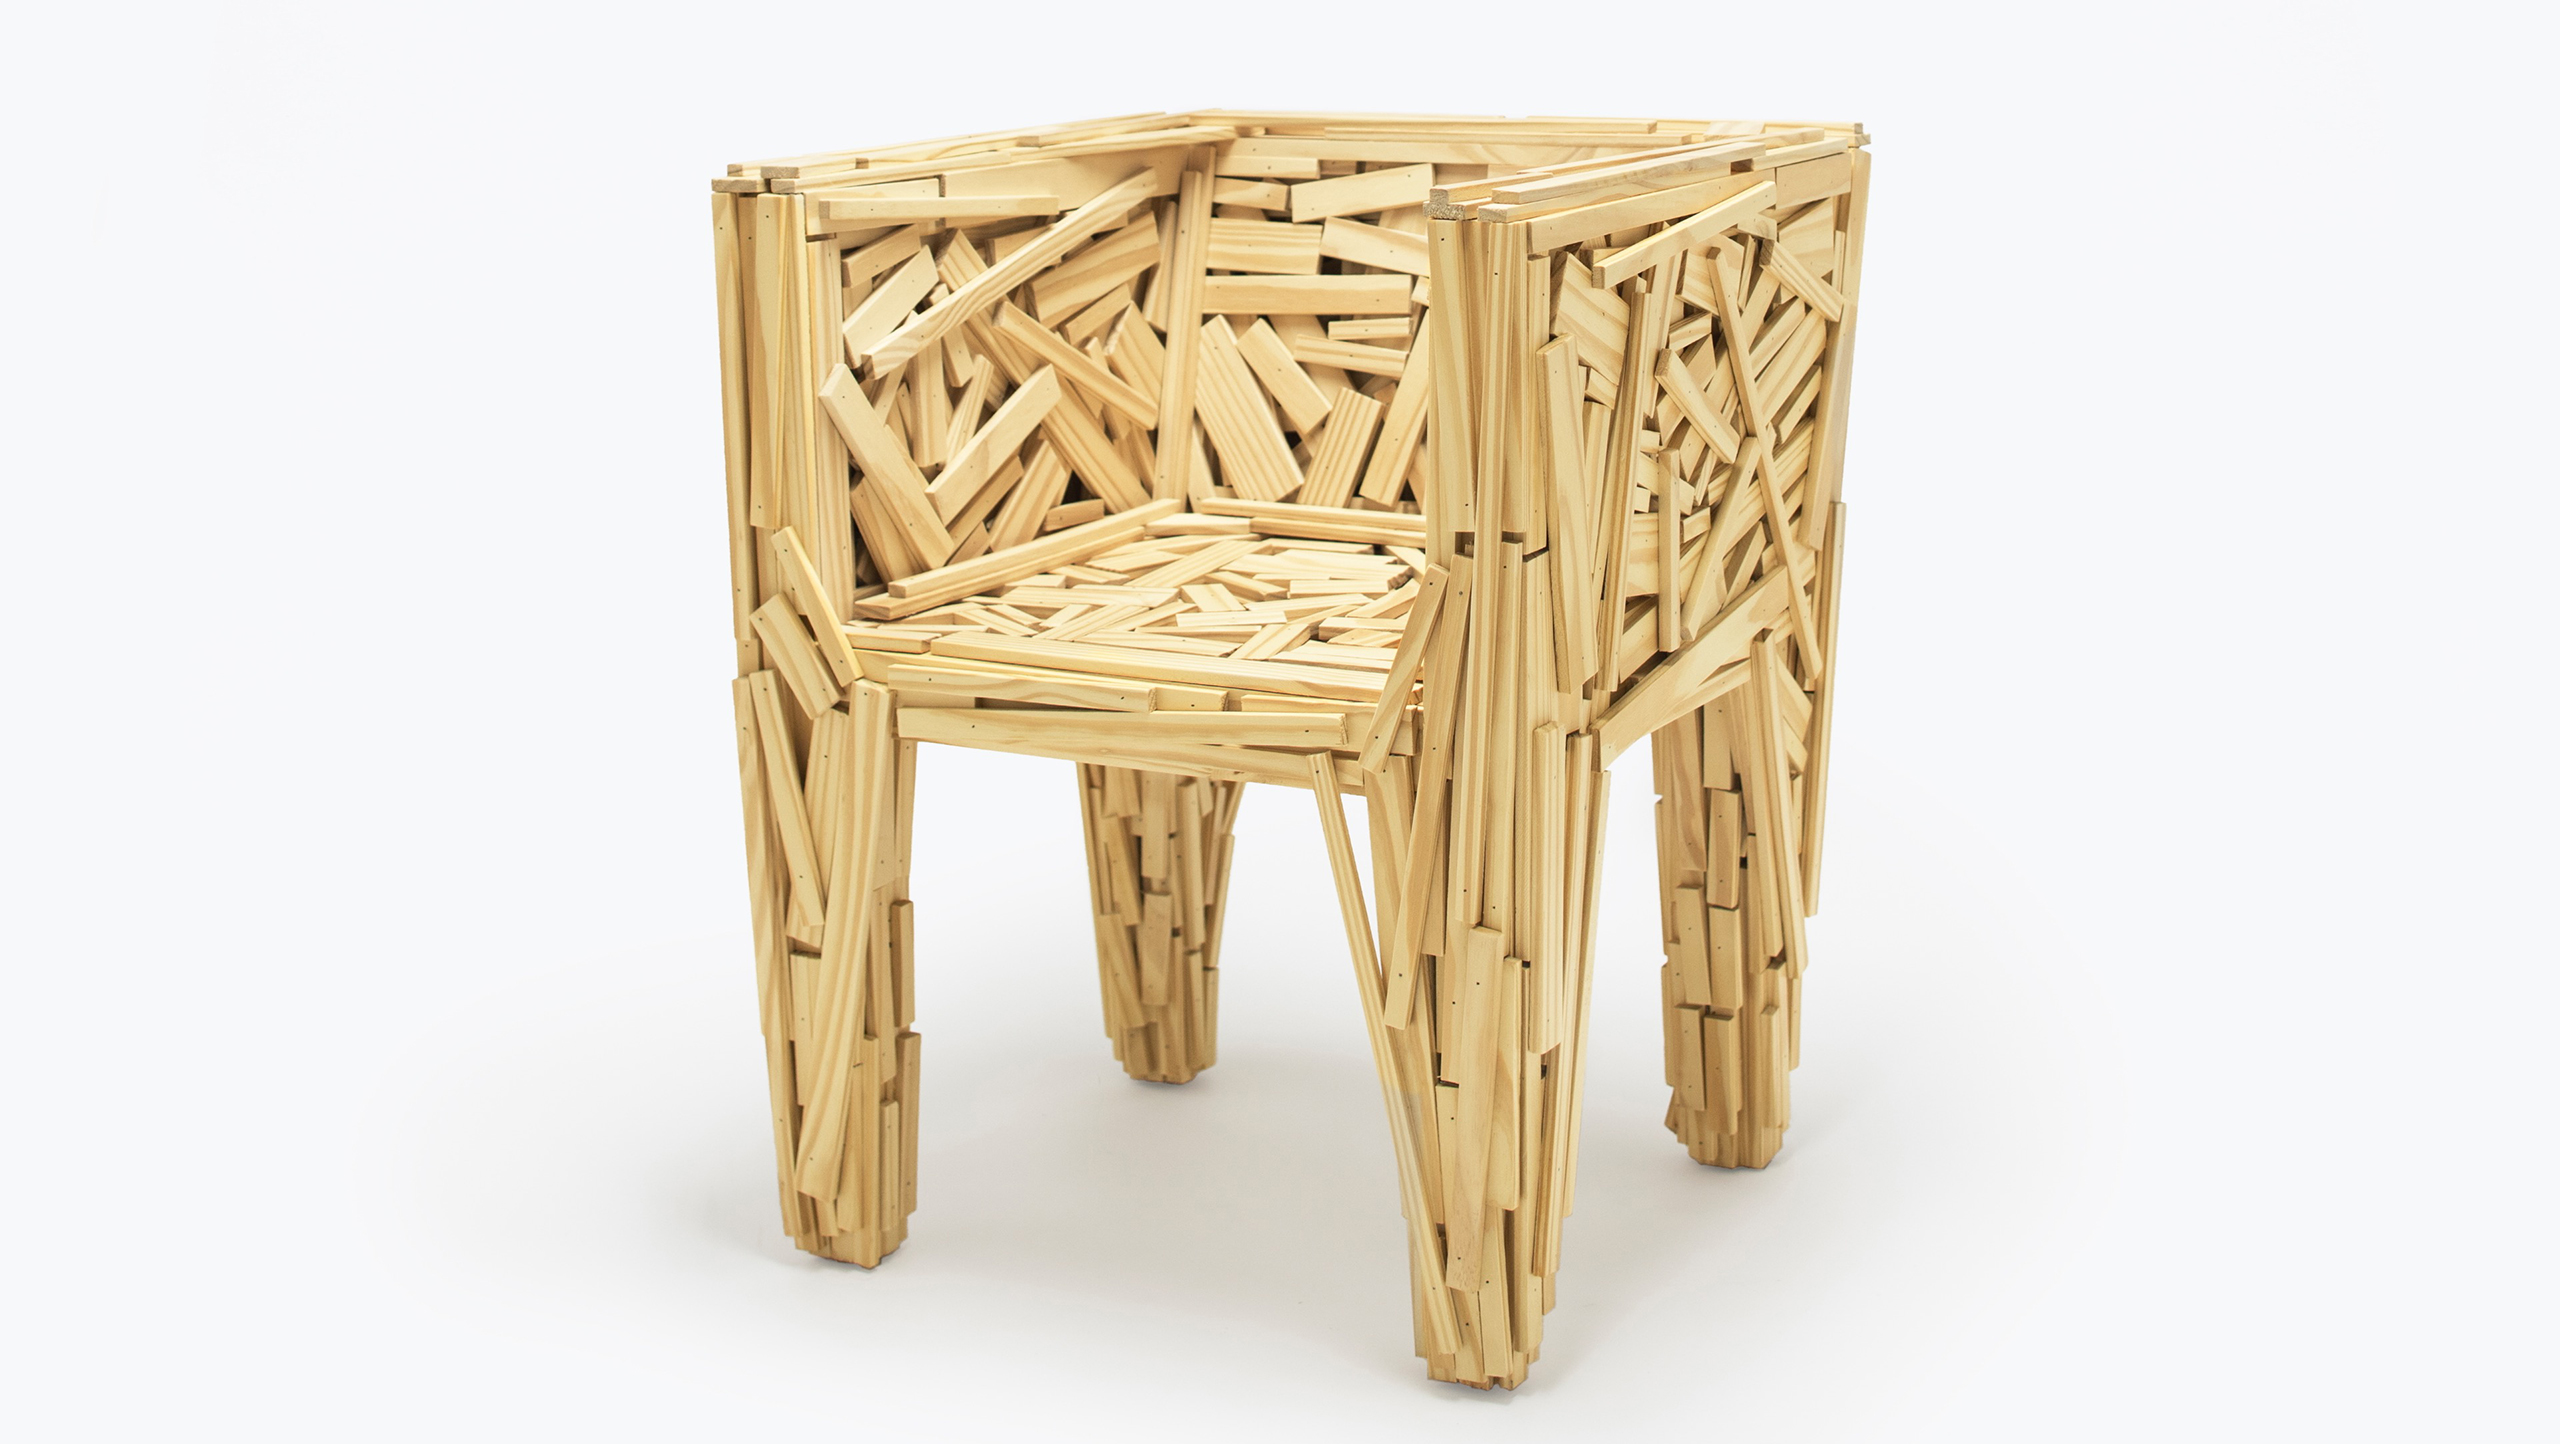 The Best of Collectible Design: Campana Brothers campana brothers The Best of Collectible Design: Campana Brothers Campana Brothers Favela chair